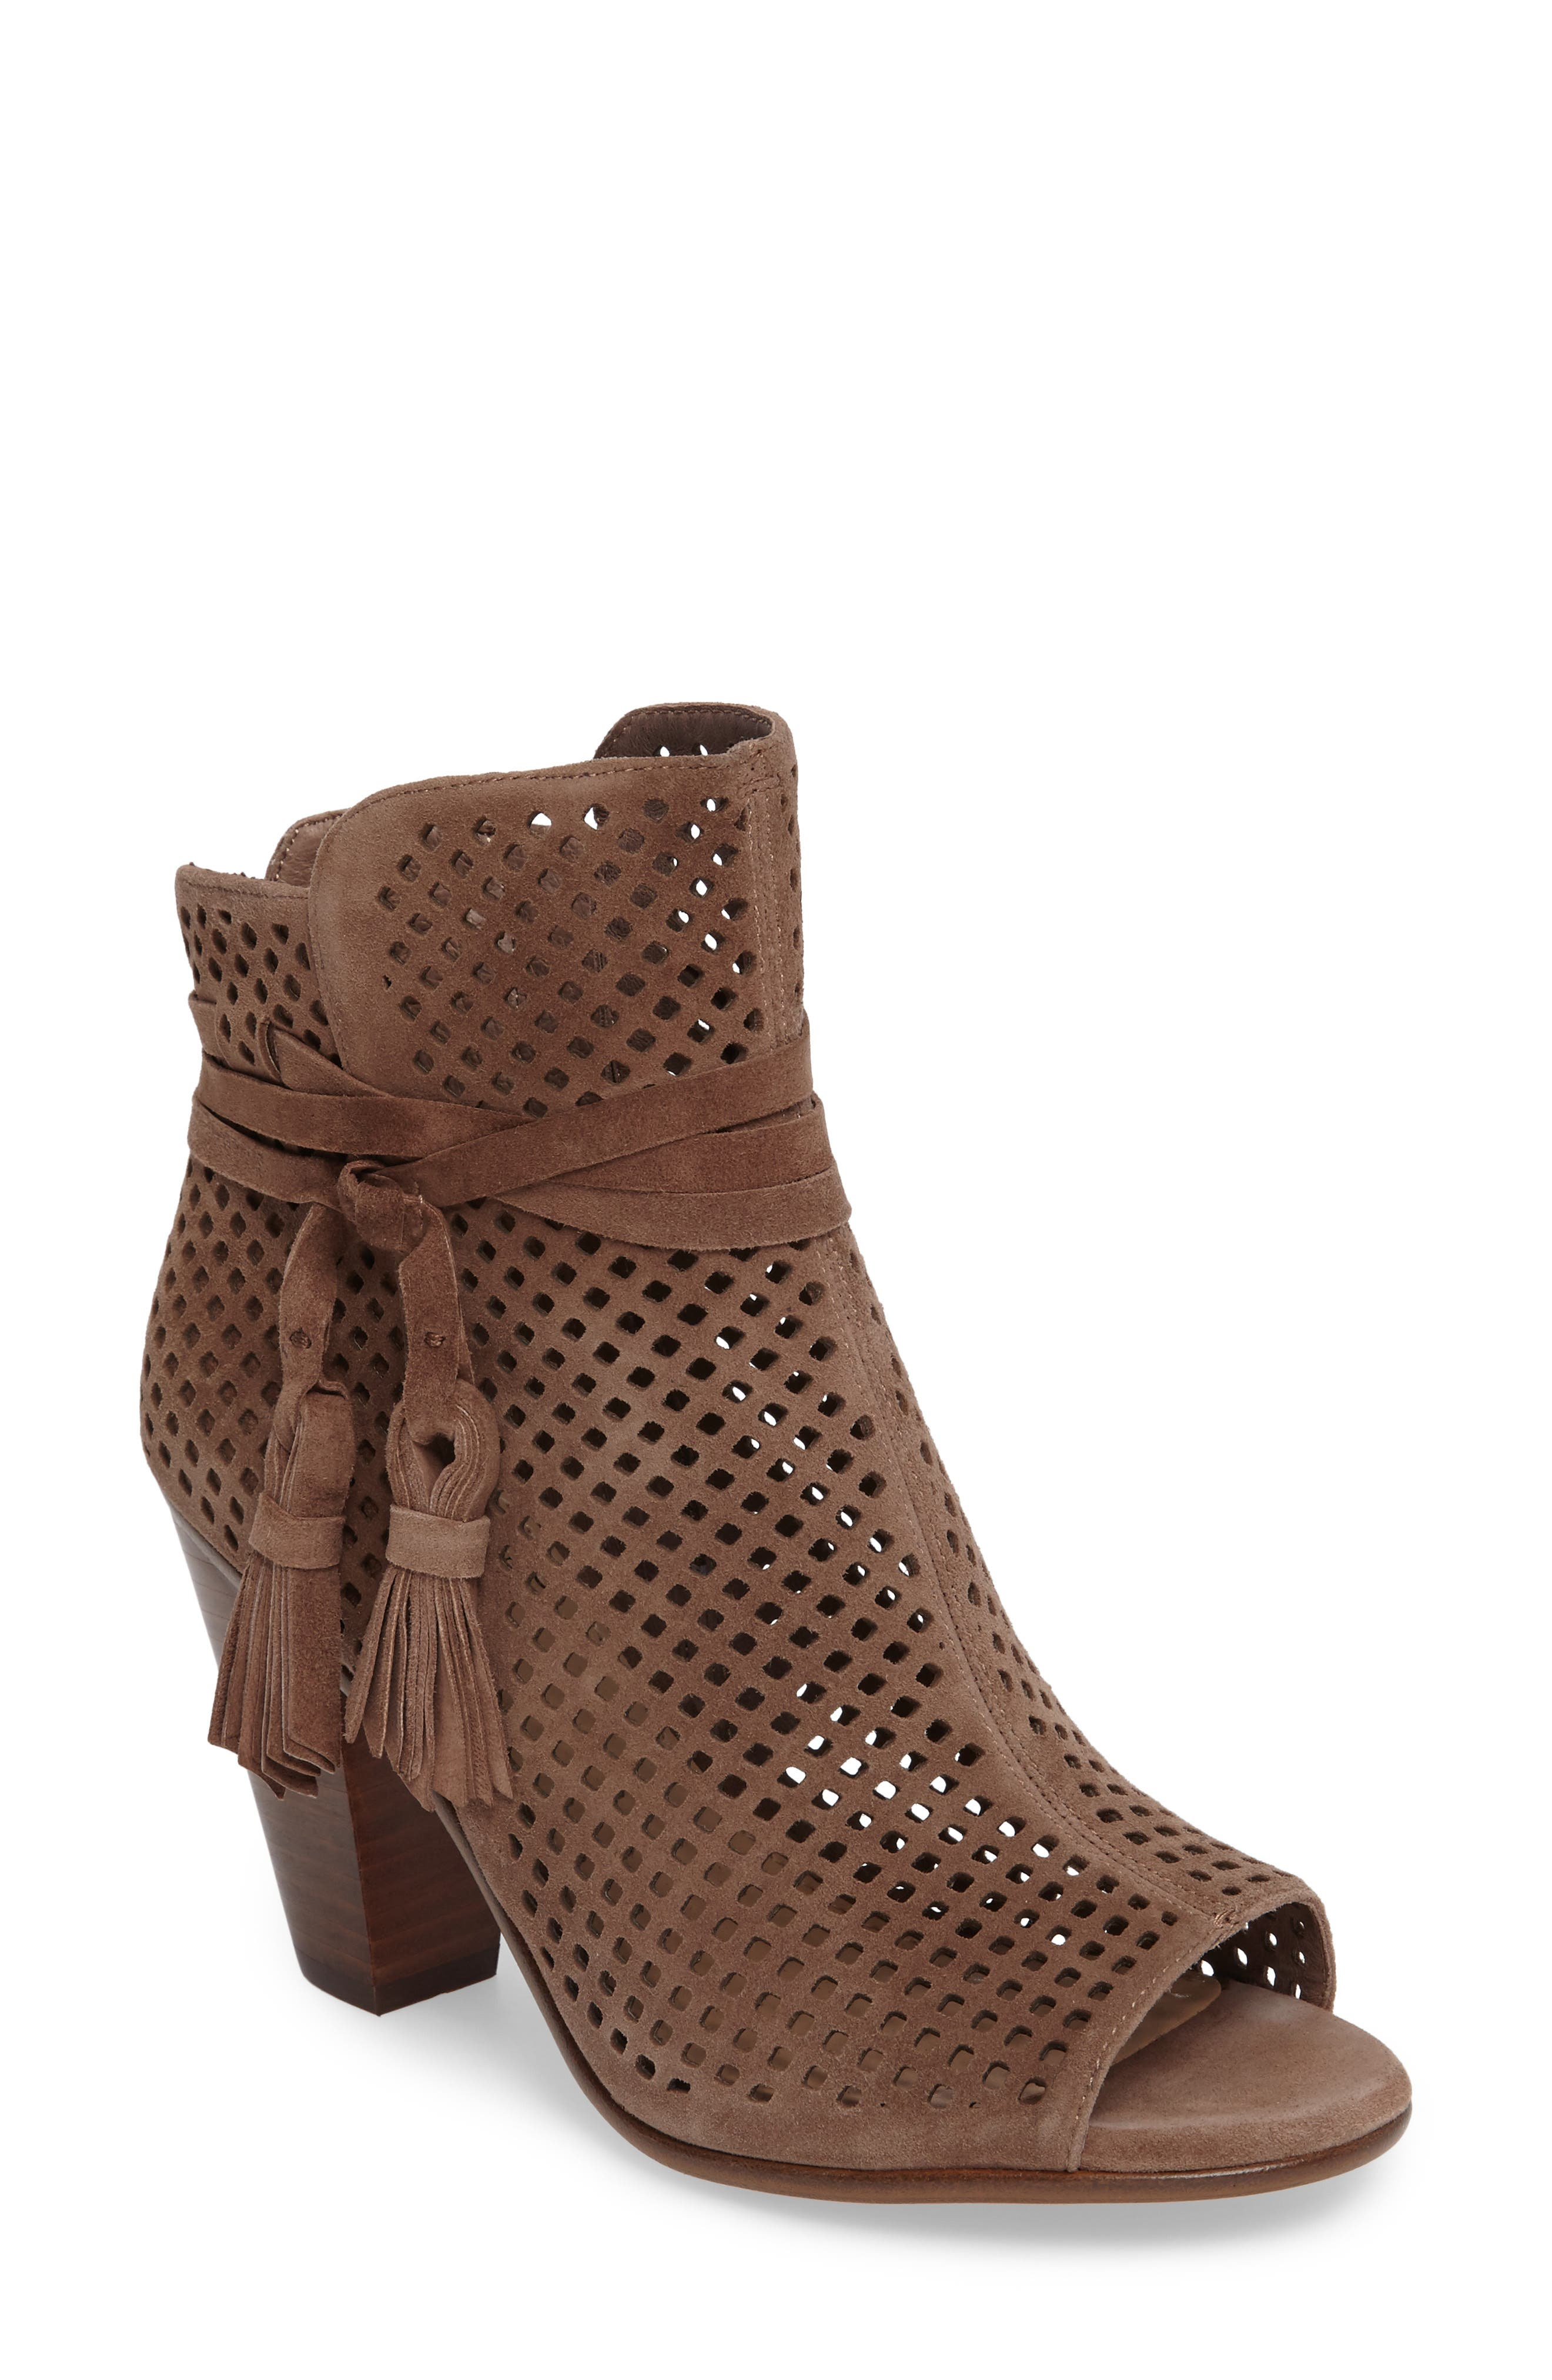 VINCE CAMUTO Kamey Perforated Open Toe Bootie